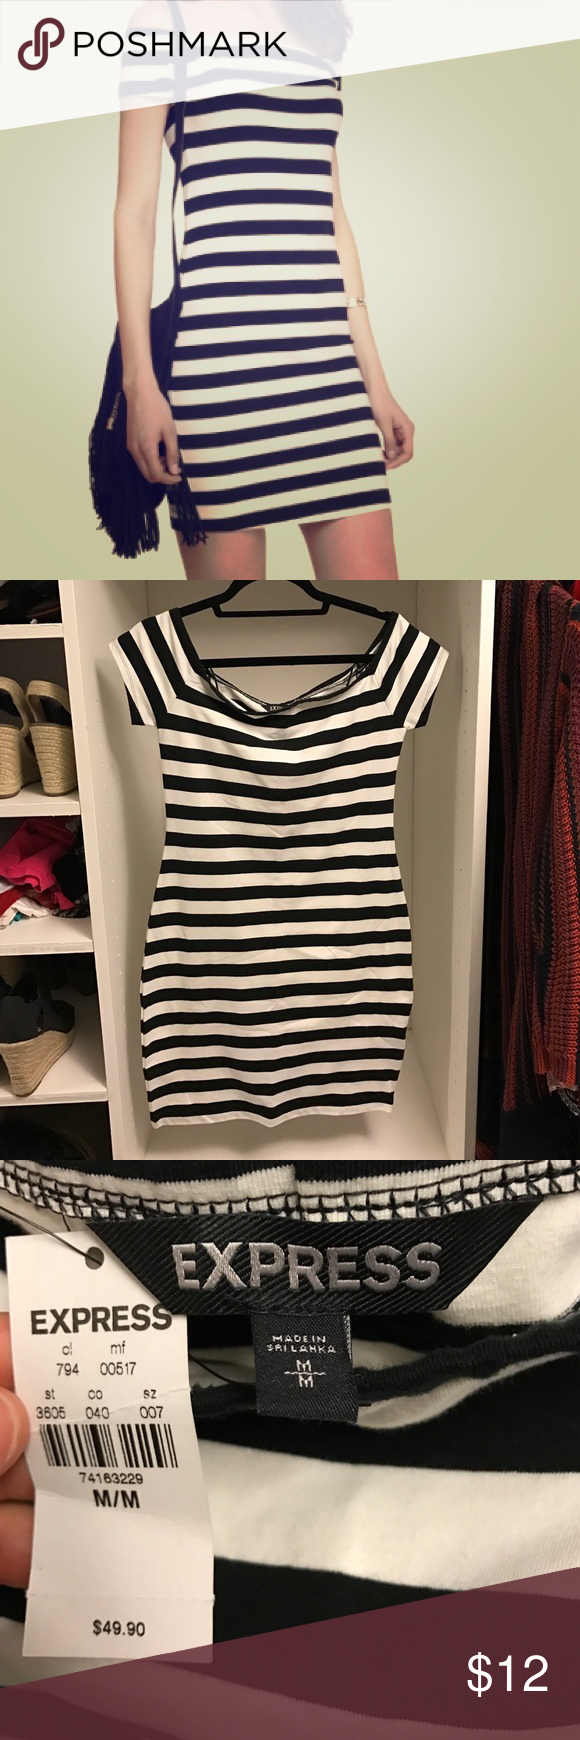 Express dress NWT size medium Black and white body con express dress with off the shoulder sleeves nwt size medium Express Dresses Mini